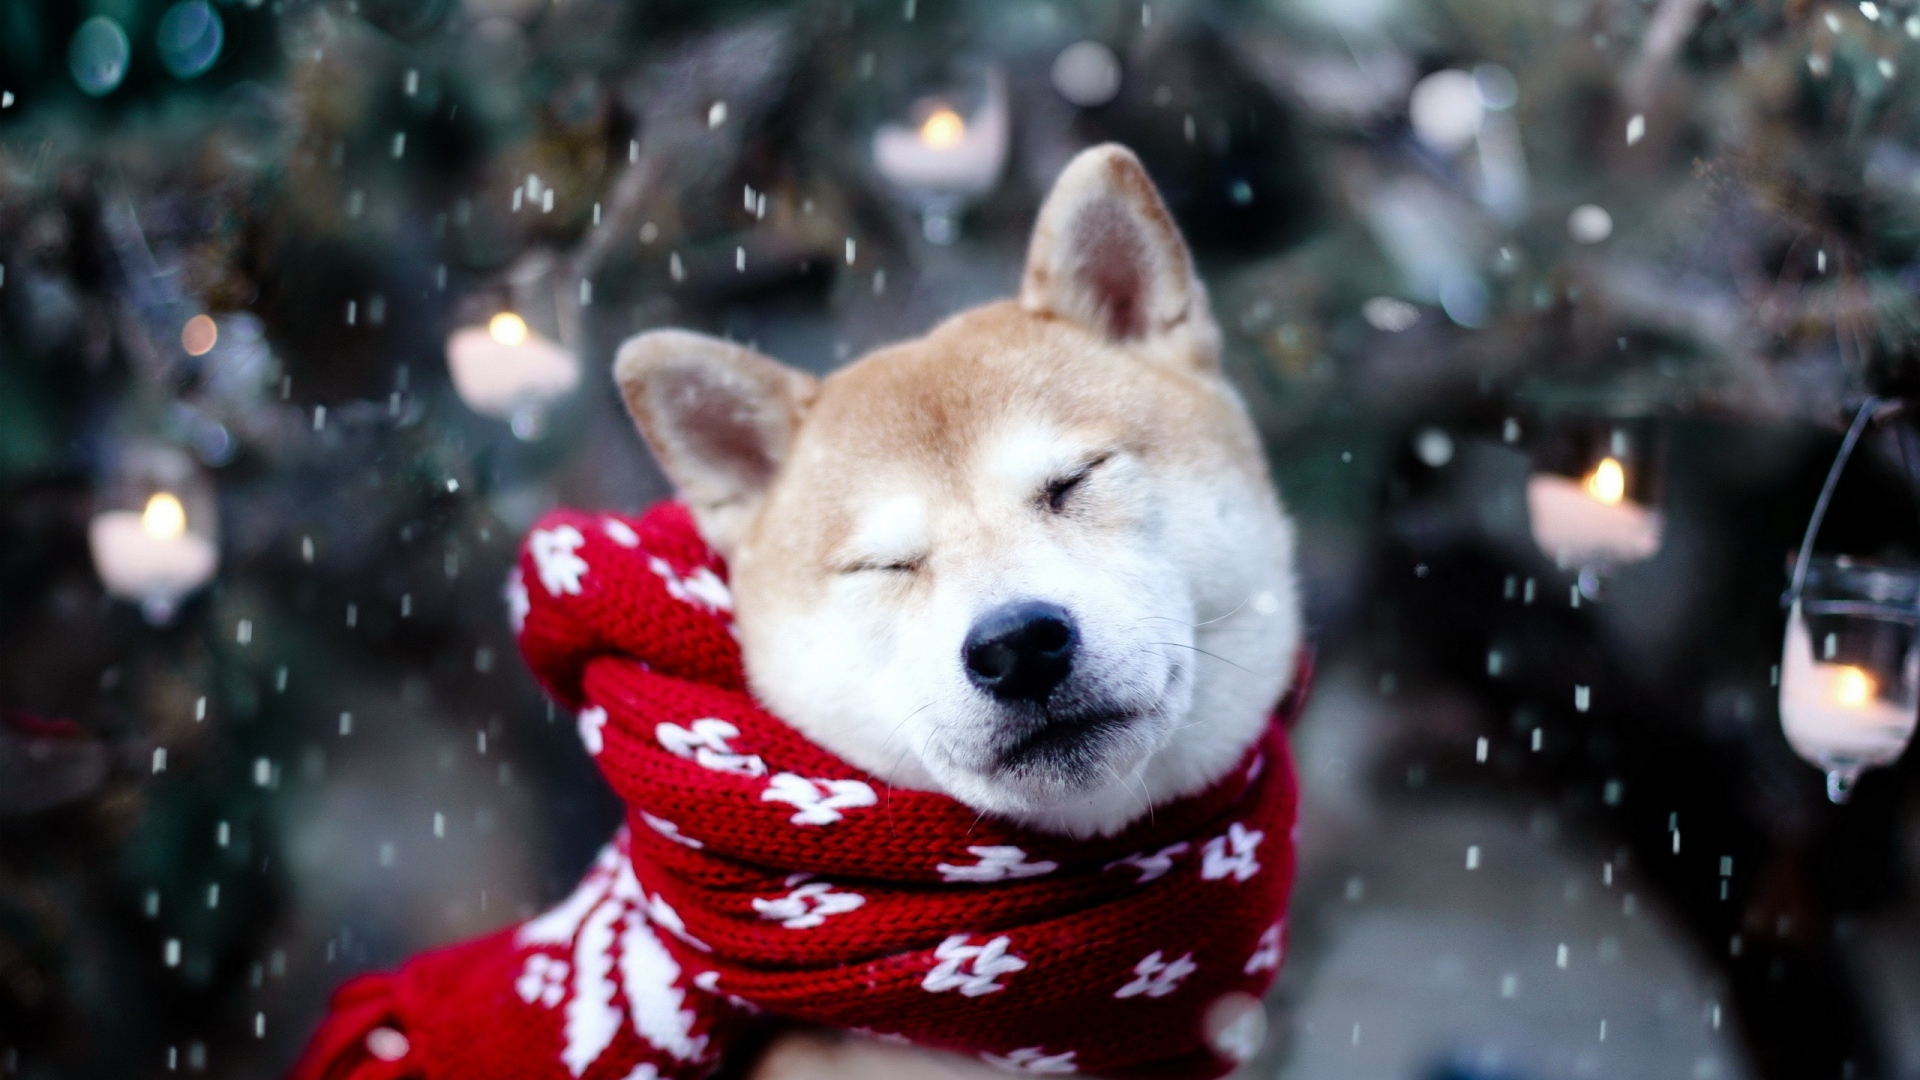 cute dog in the winter snow wearing a red hoodie